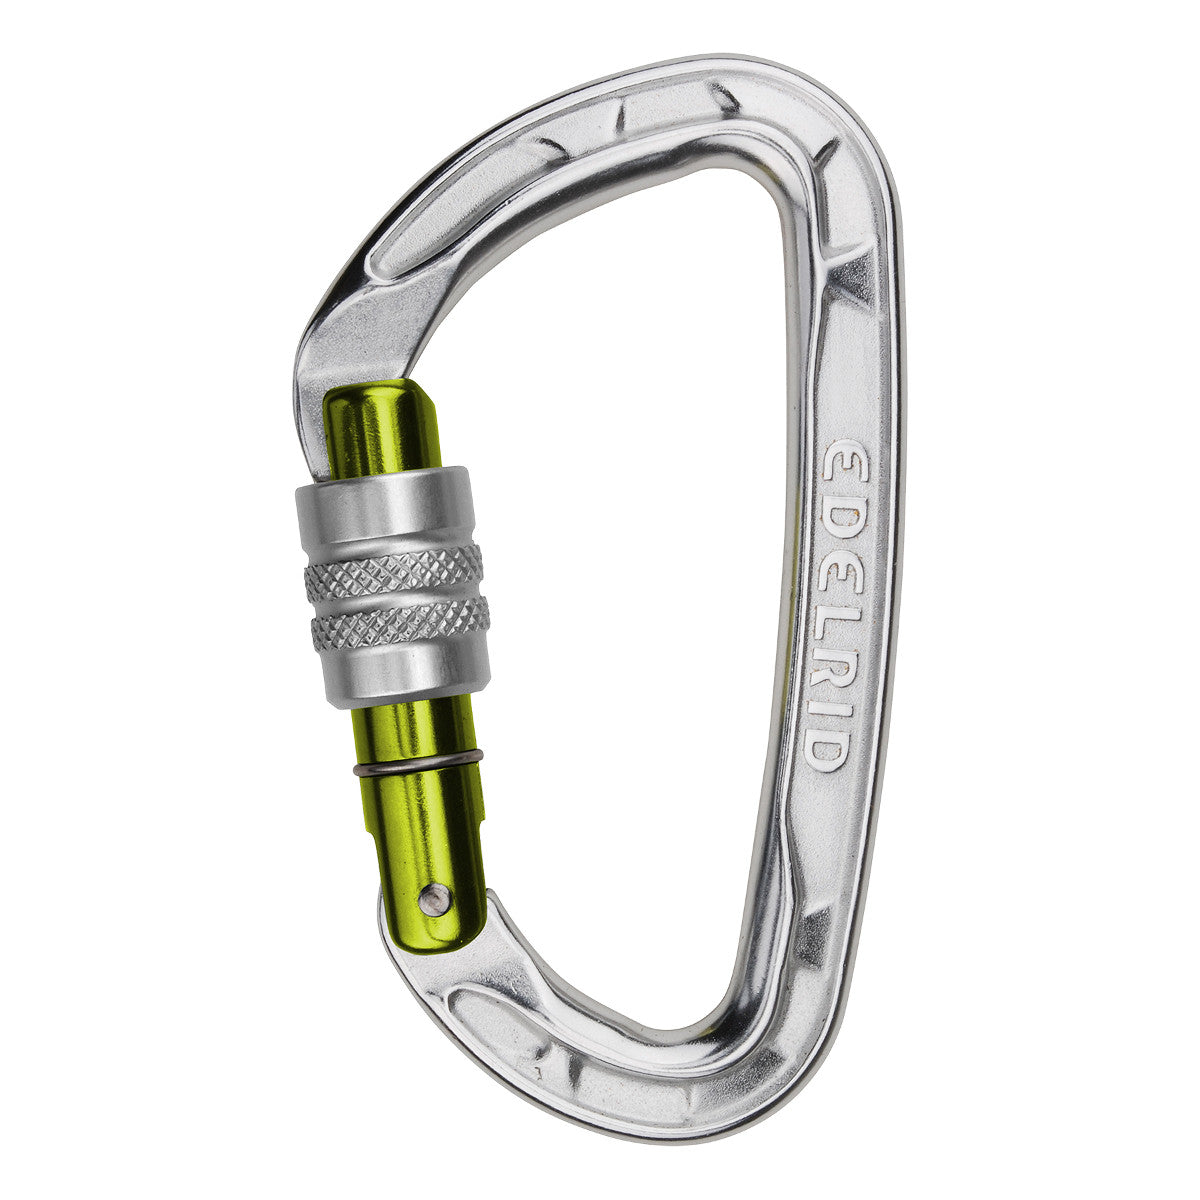 Edelrid Pure Screw screwgate climbing carabiner, in Silver colour with a green screwlock